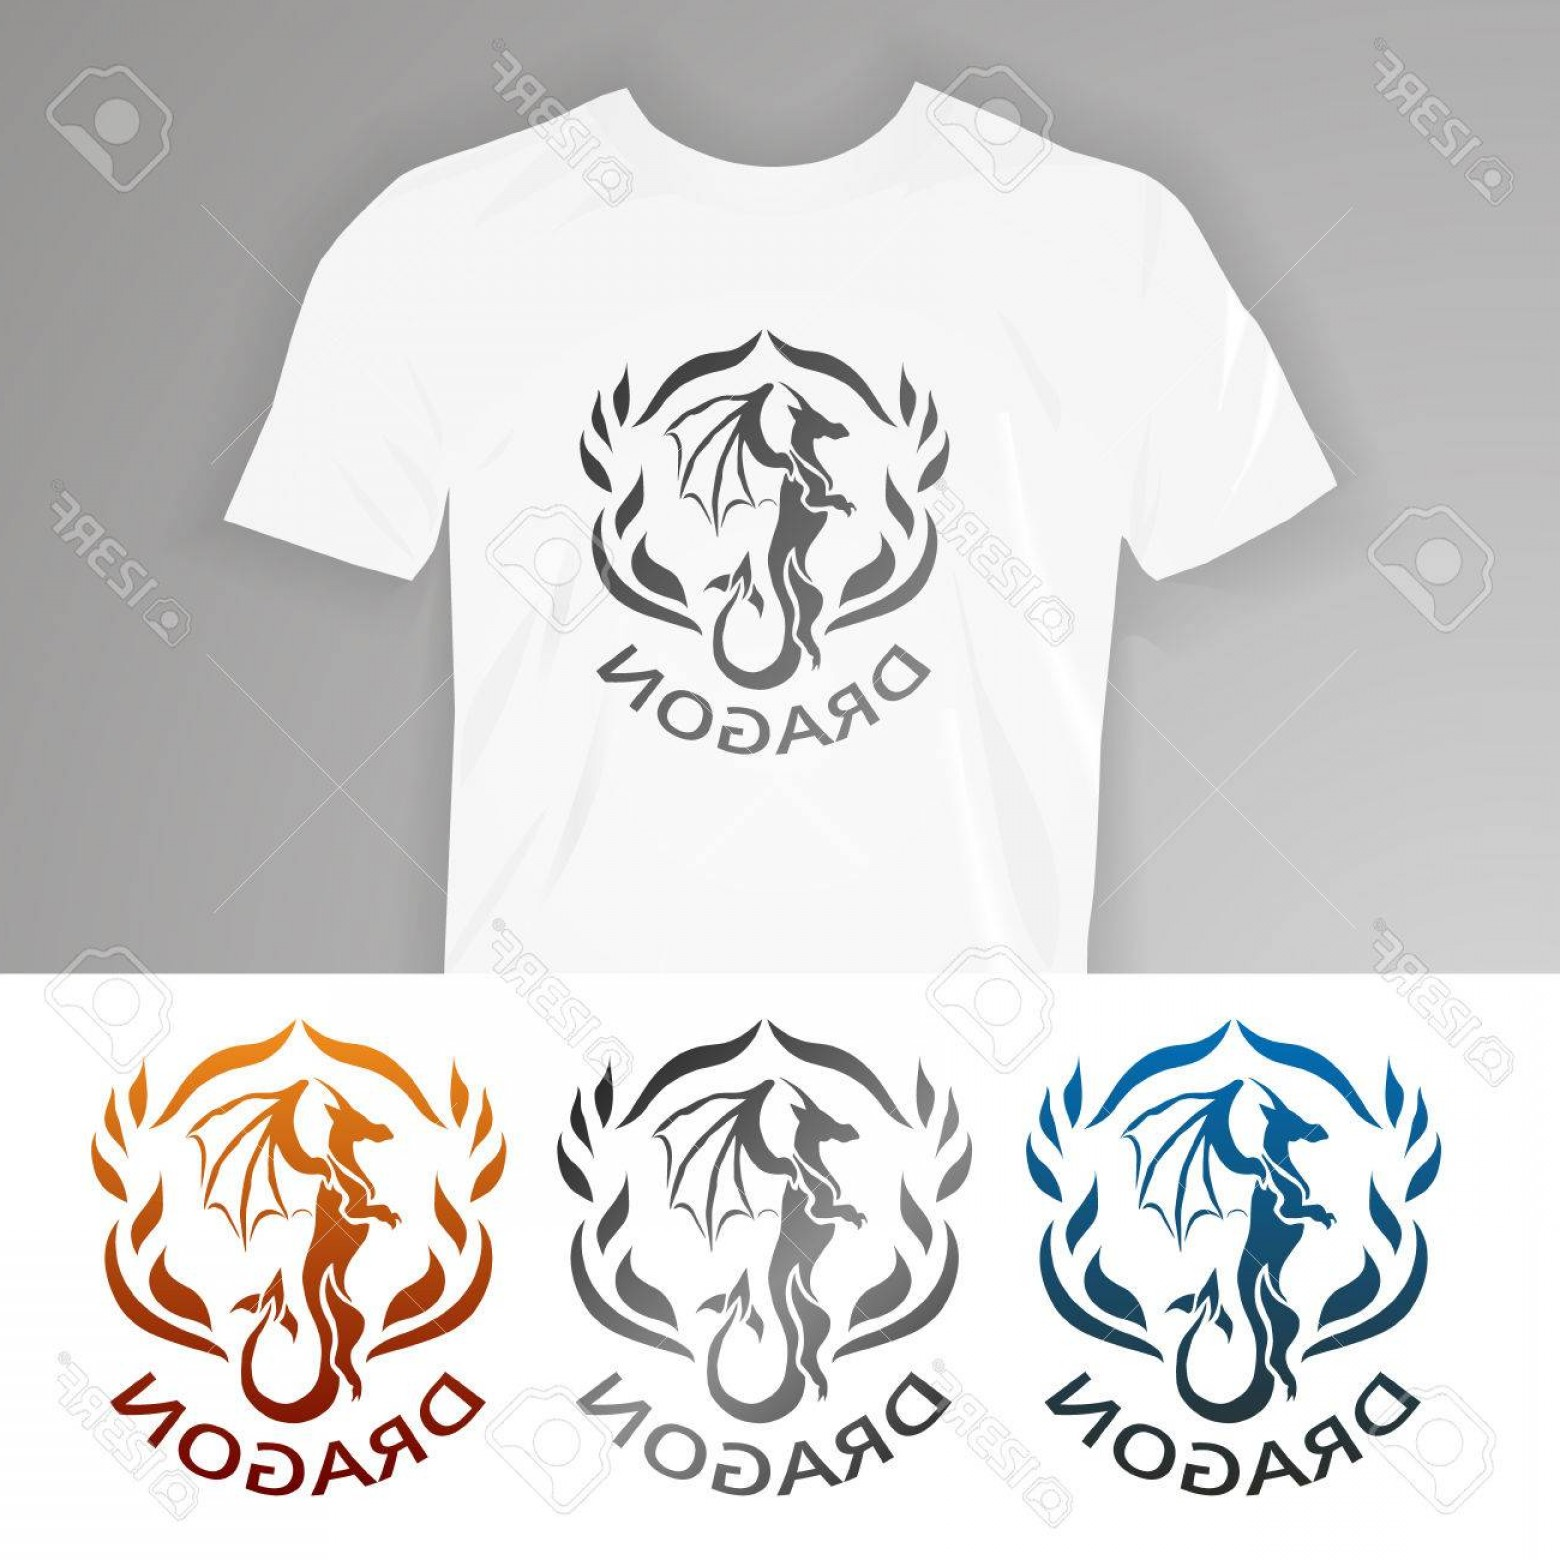 Dragon Vector Design: Photostock Vector Text On T Shirt Dragon Vector Illustration Dragon For Design Of T Shirts Mugs Pens And Other Things